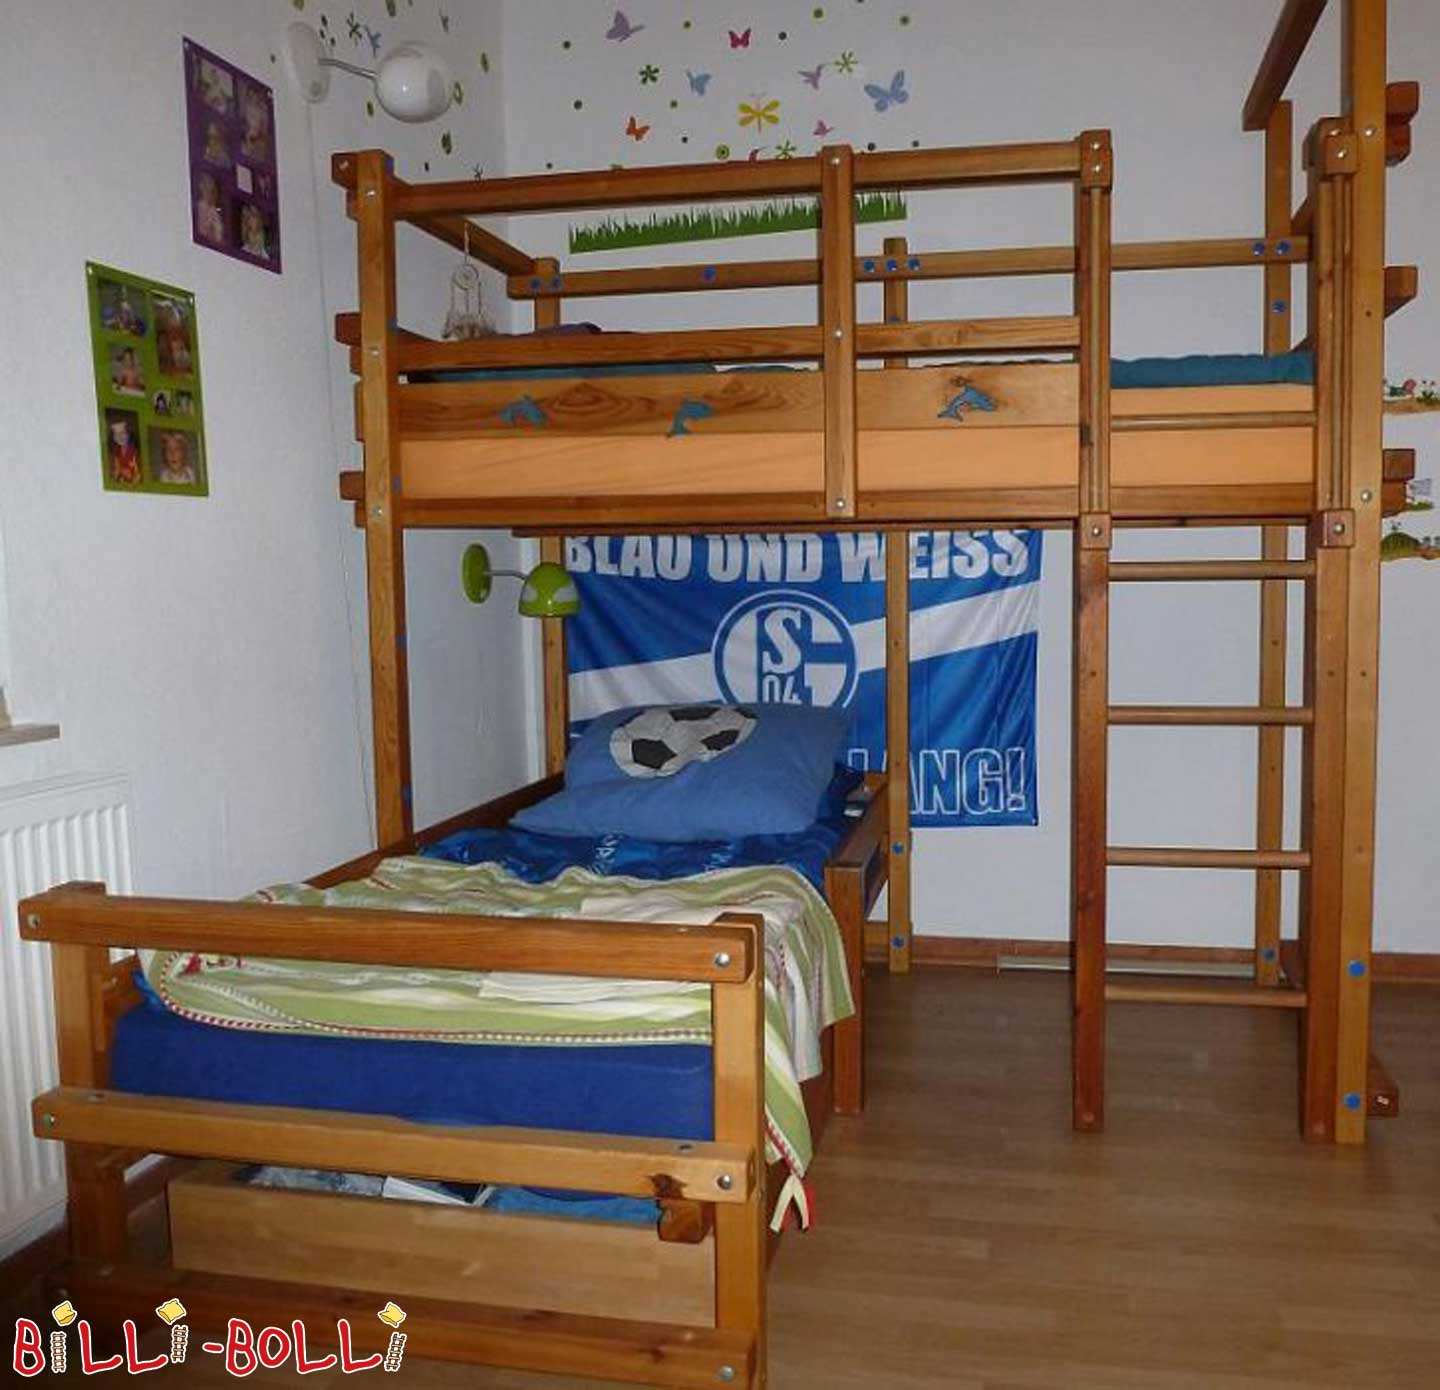 Secondhand page 75 billi bolli kids furniture for Second hand bunk beds